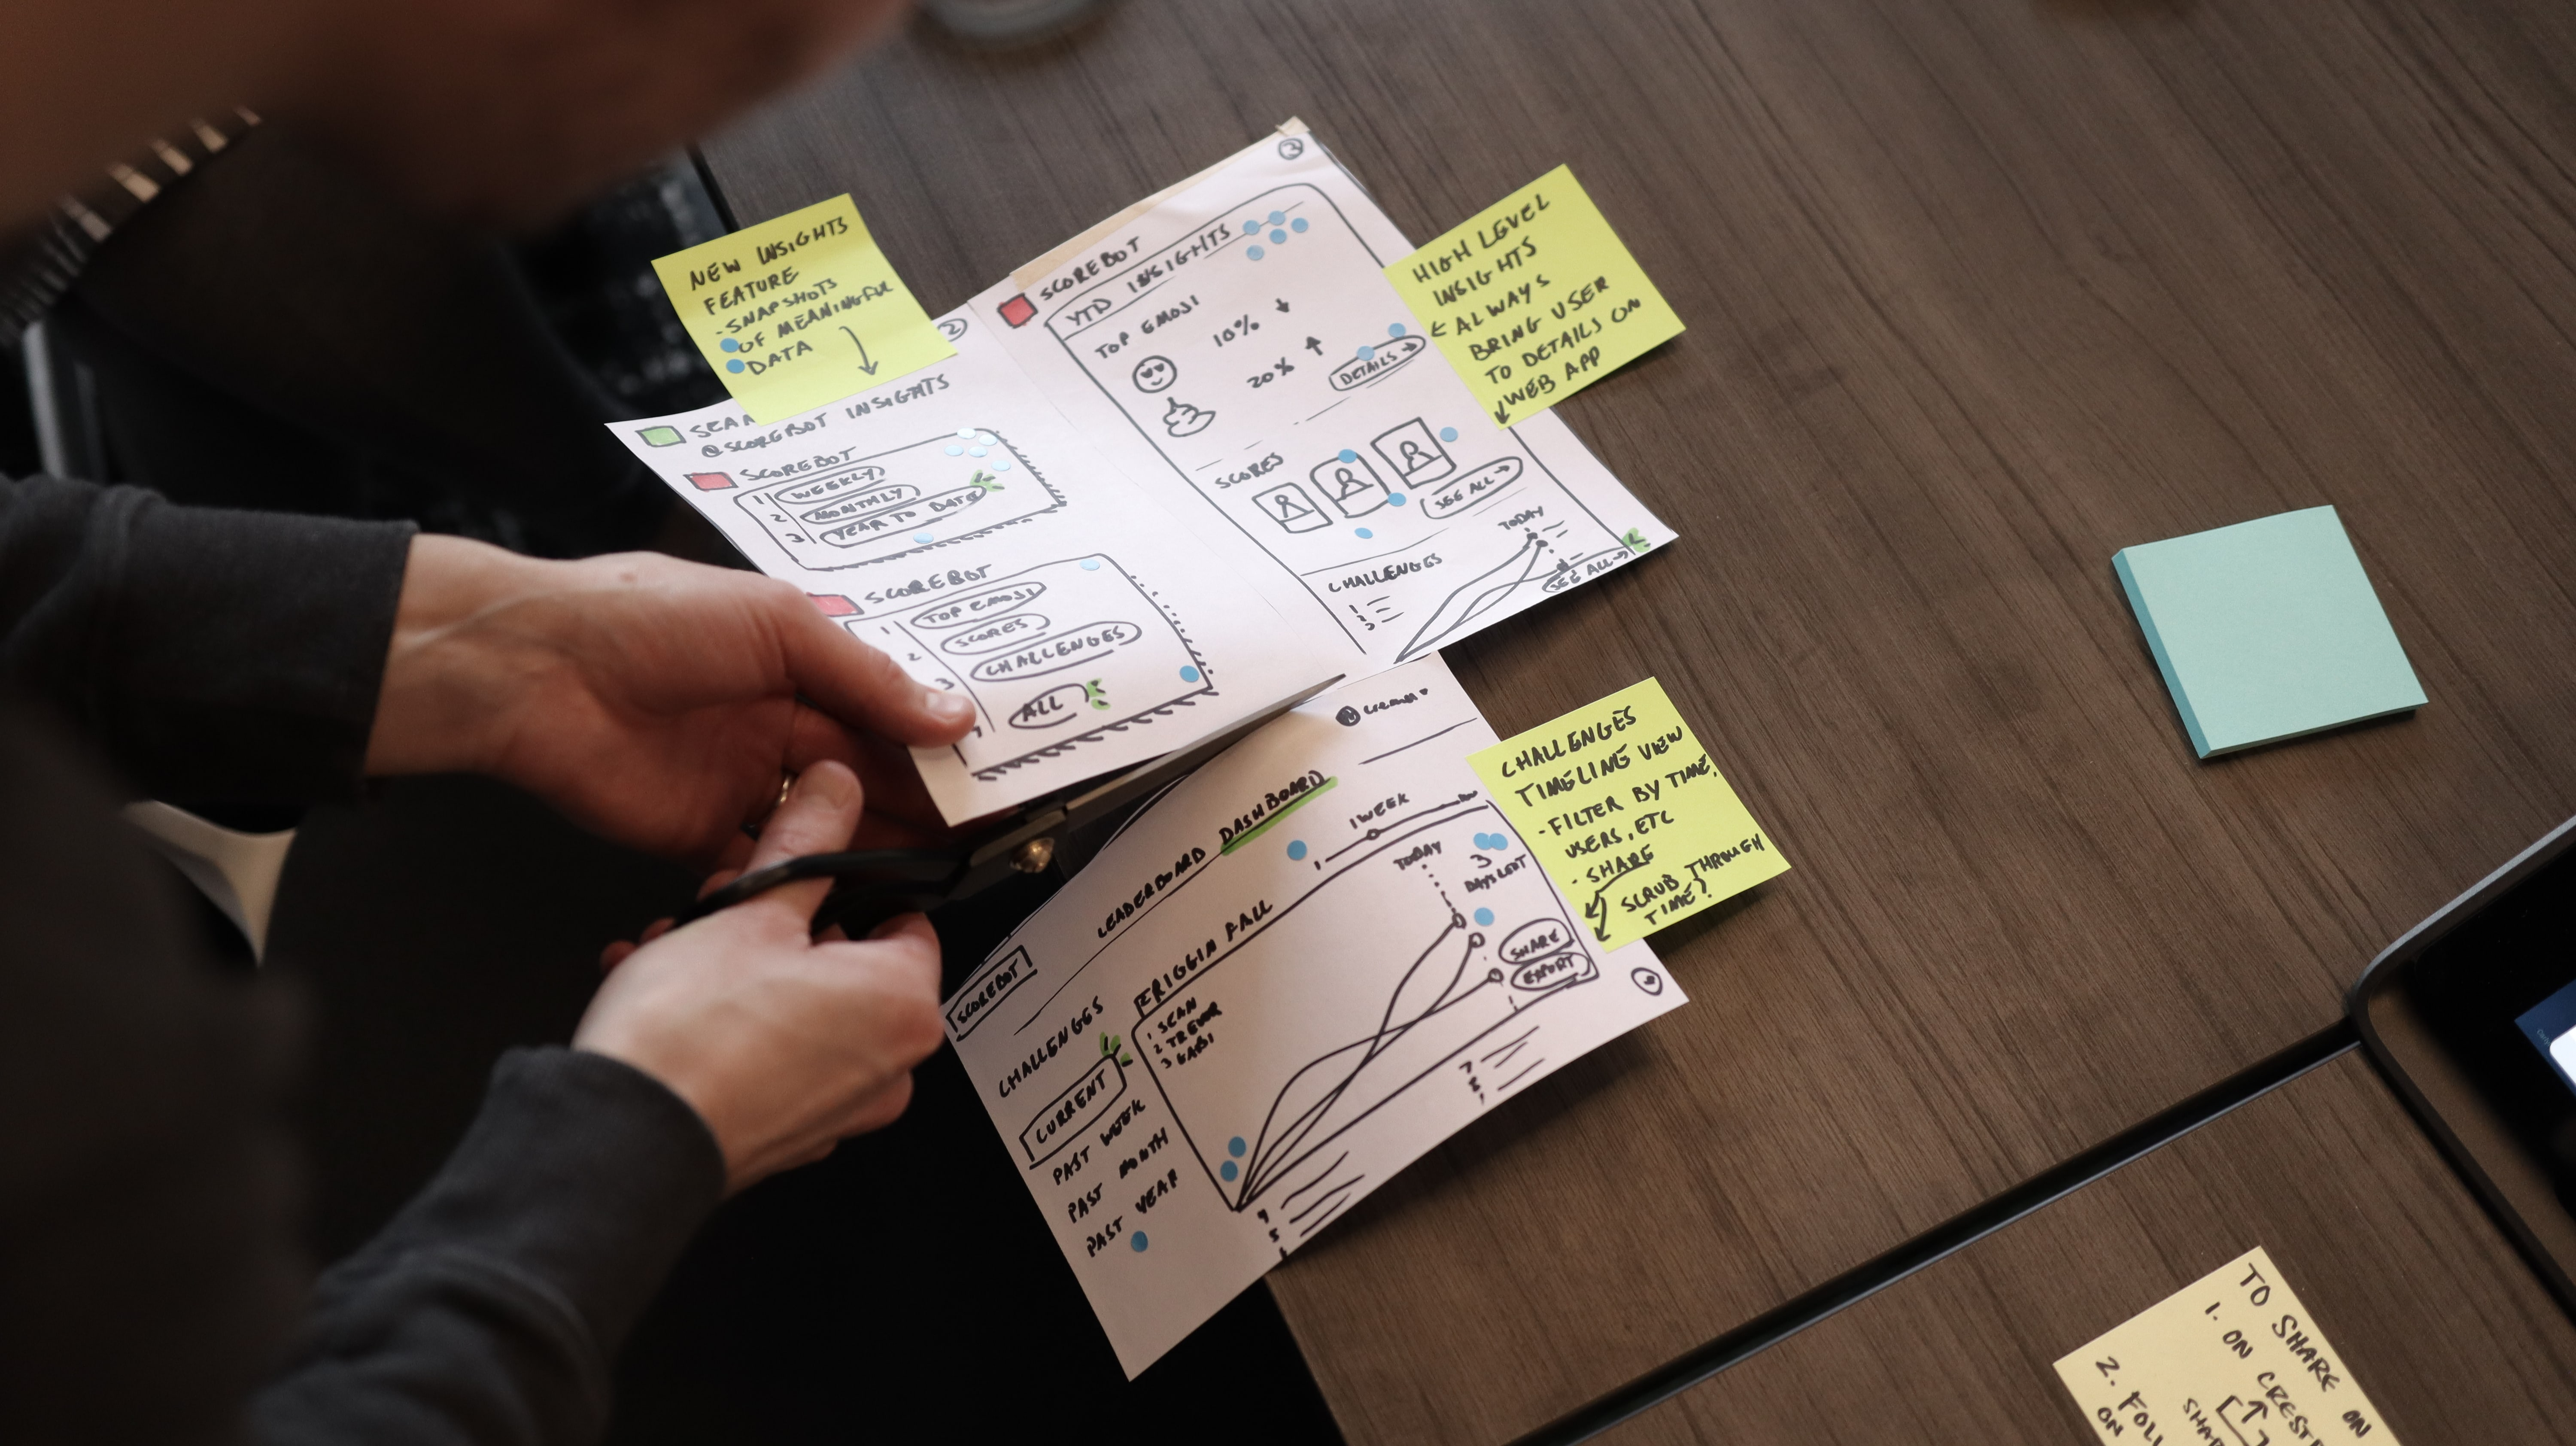 Man cutting out designs during design sprint